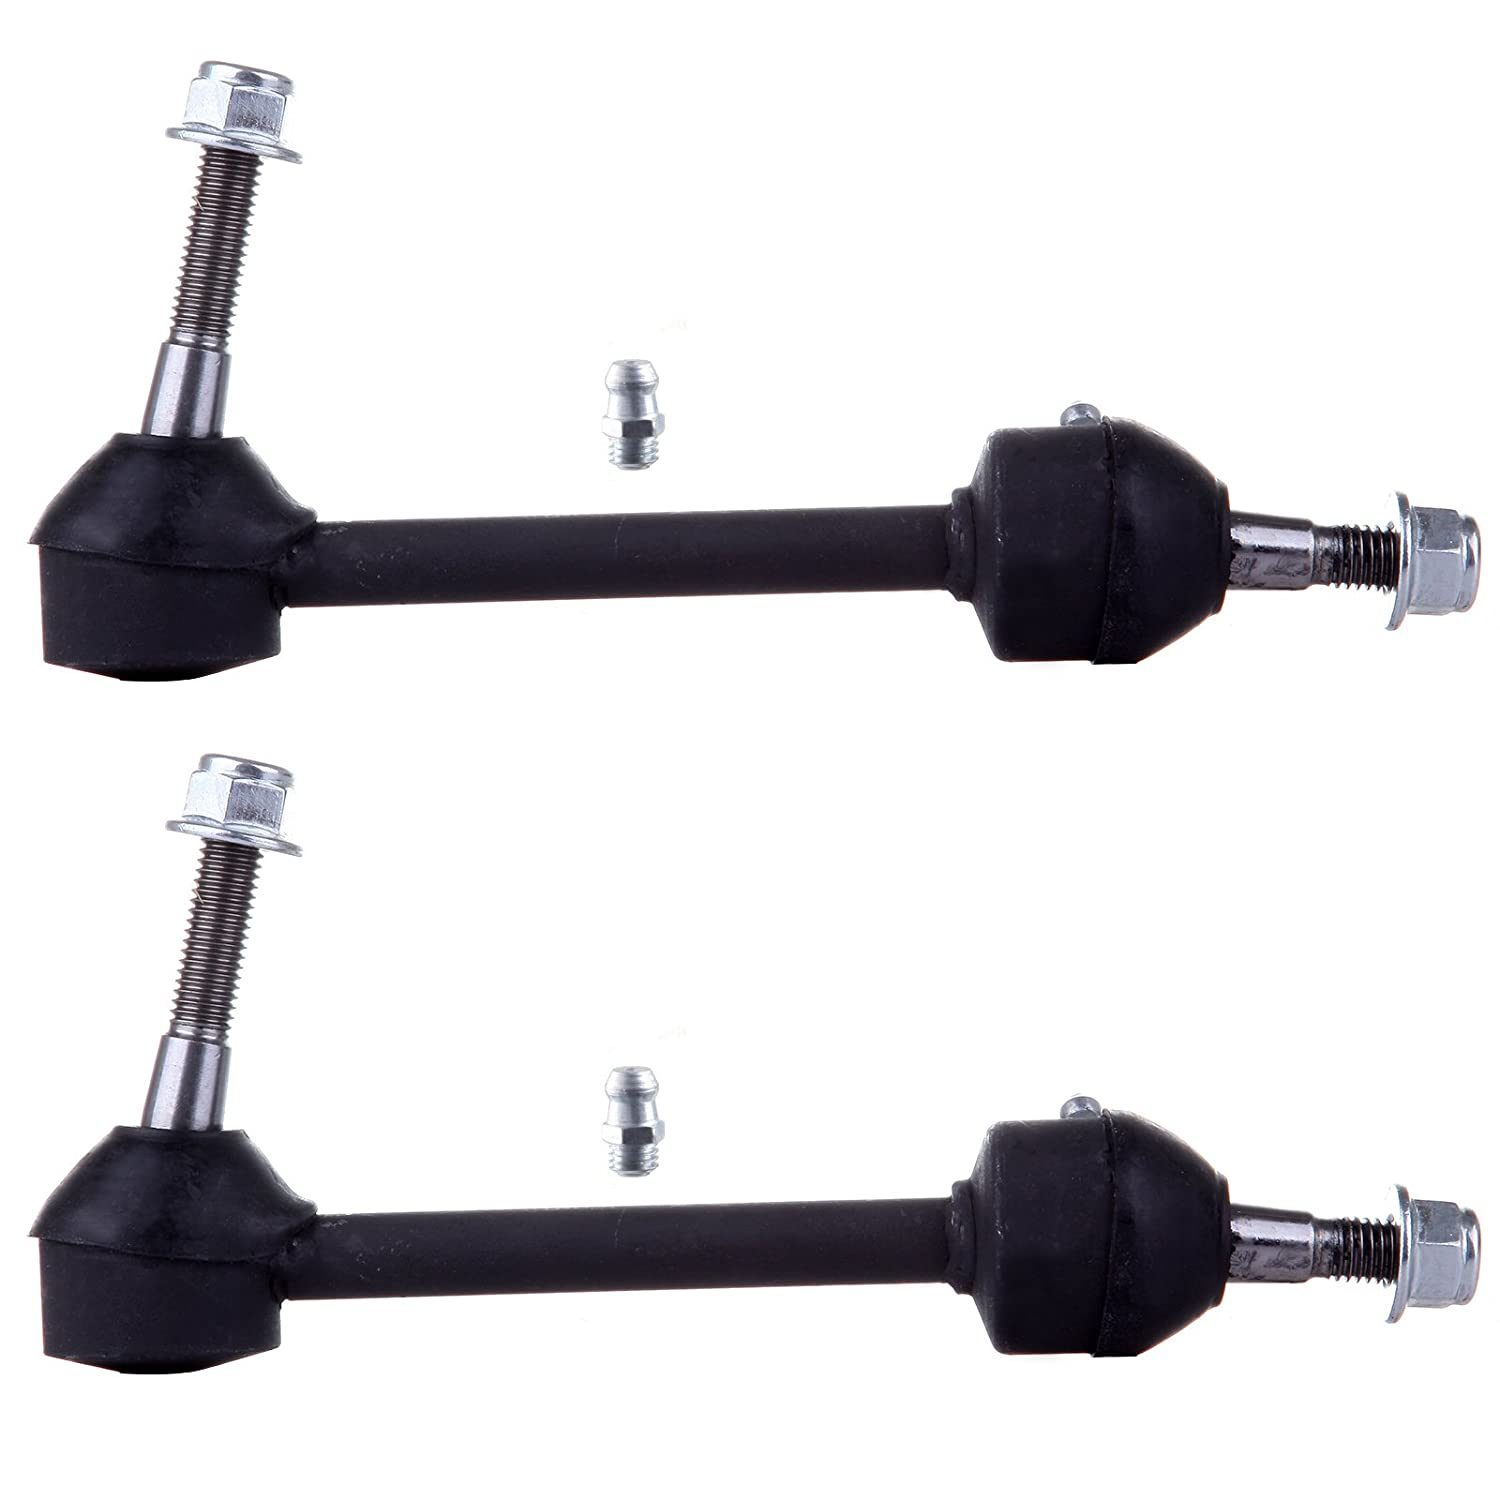 ECCPP Front Stabilizer Sway Bar Links Complete Kit for 1995 1996 1997 Ford Crown Victoria Lincoln Town Car (2Pcs) 802014-5211-1058381